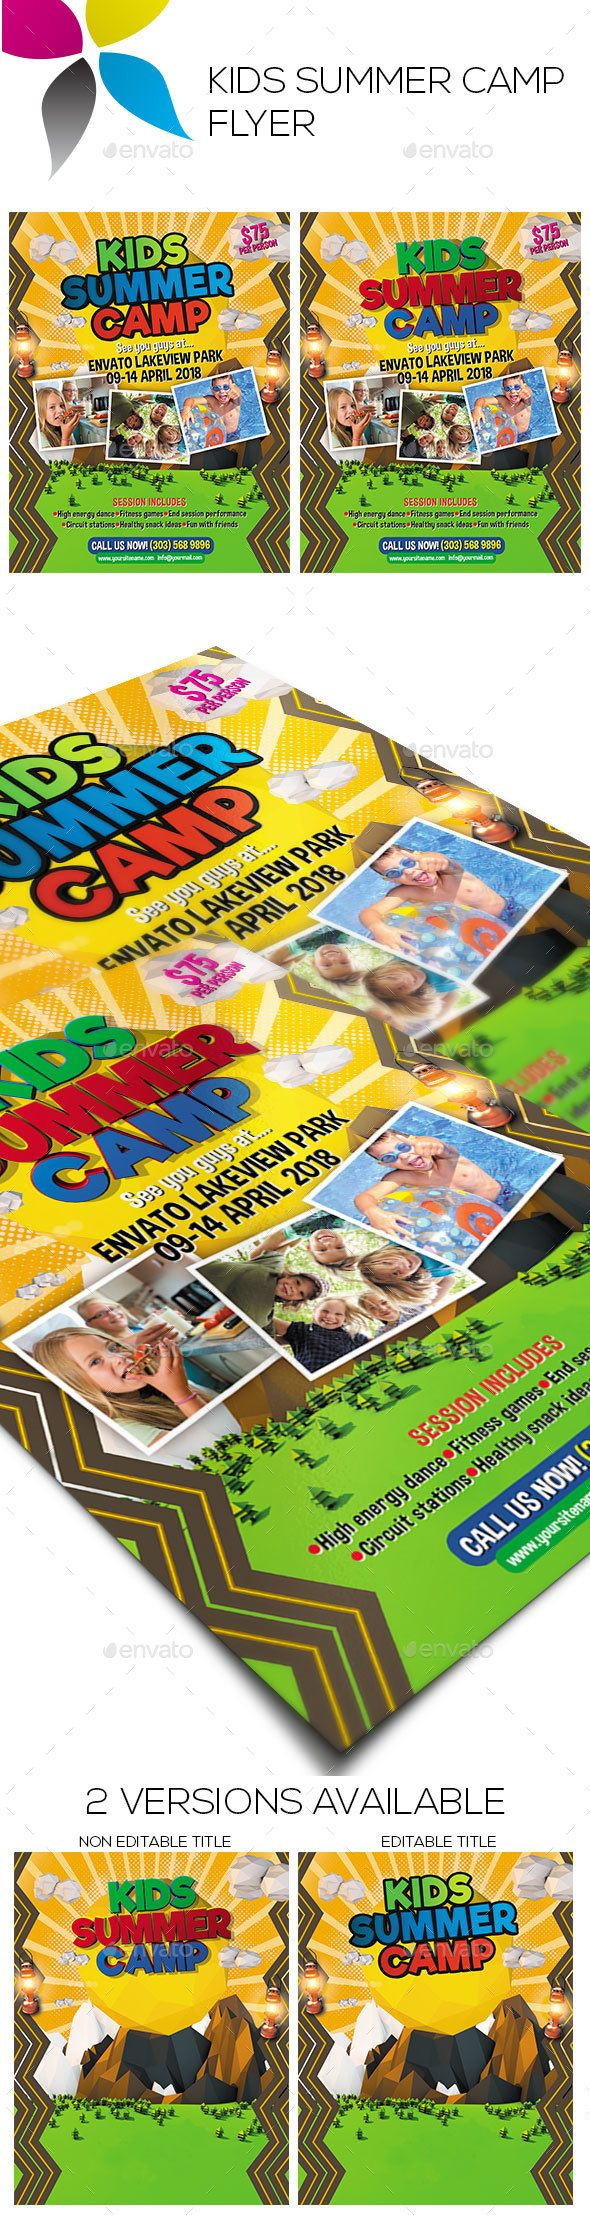 Best Kids Summer Flyer Images On   Event Flyers